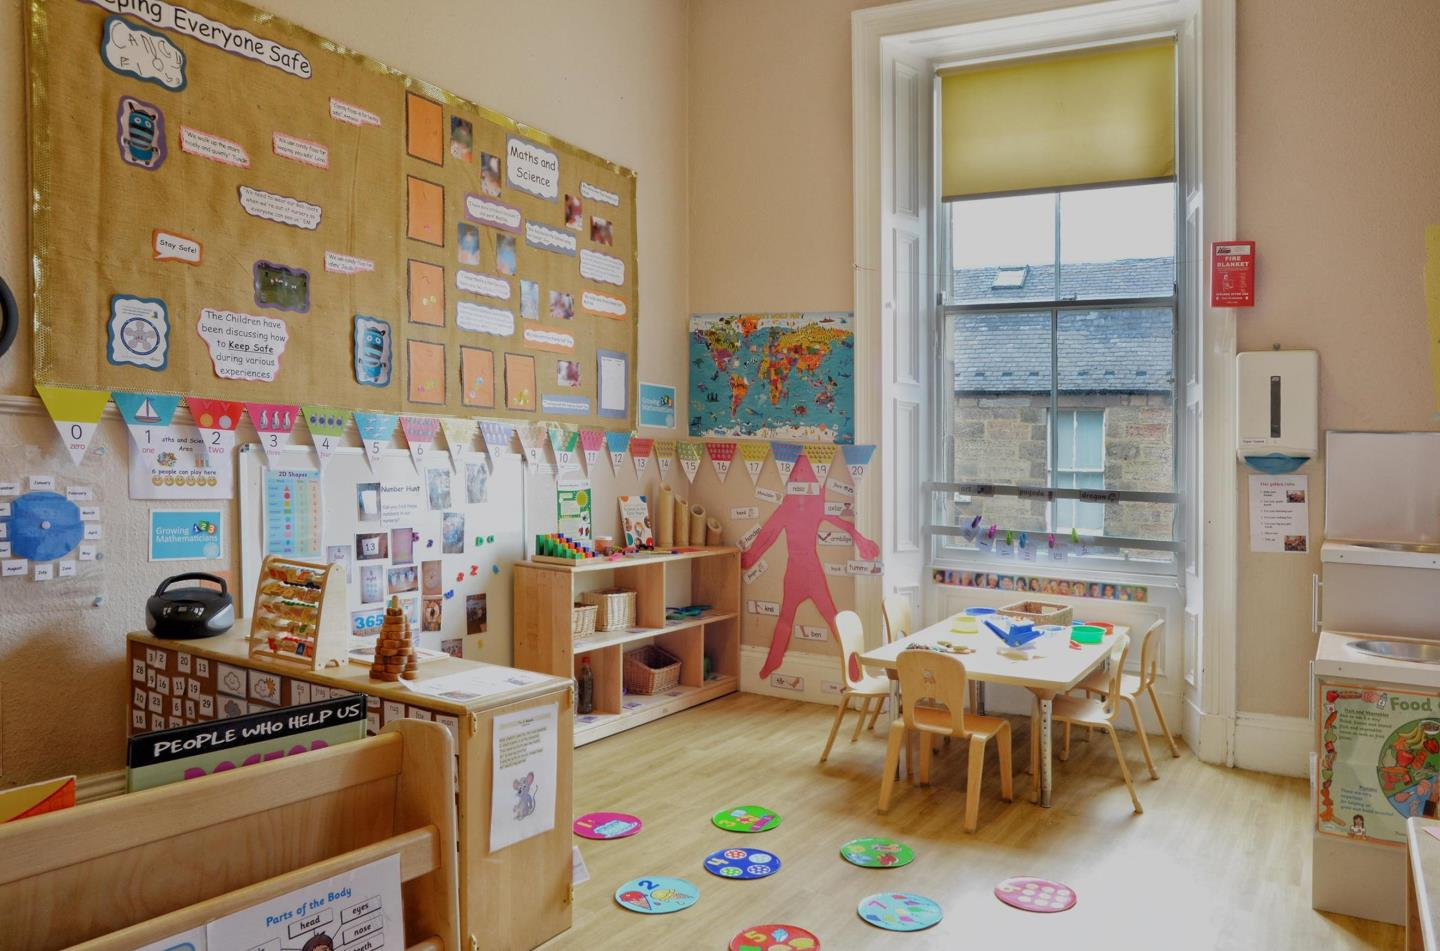 Bright Horizons Bruntsfield Early Learning and Childcare